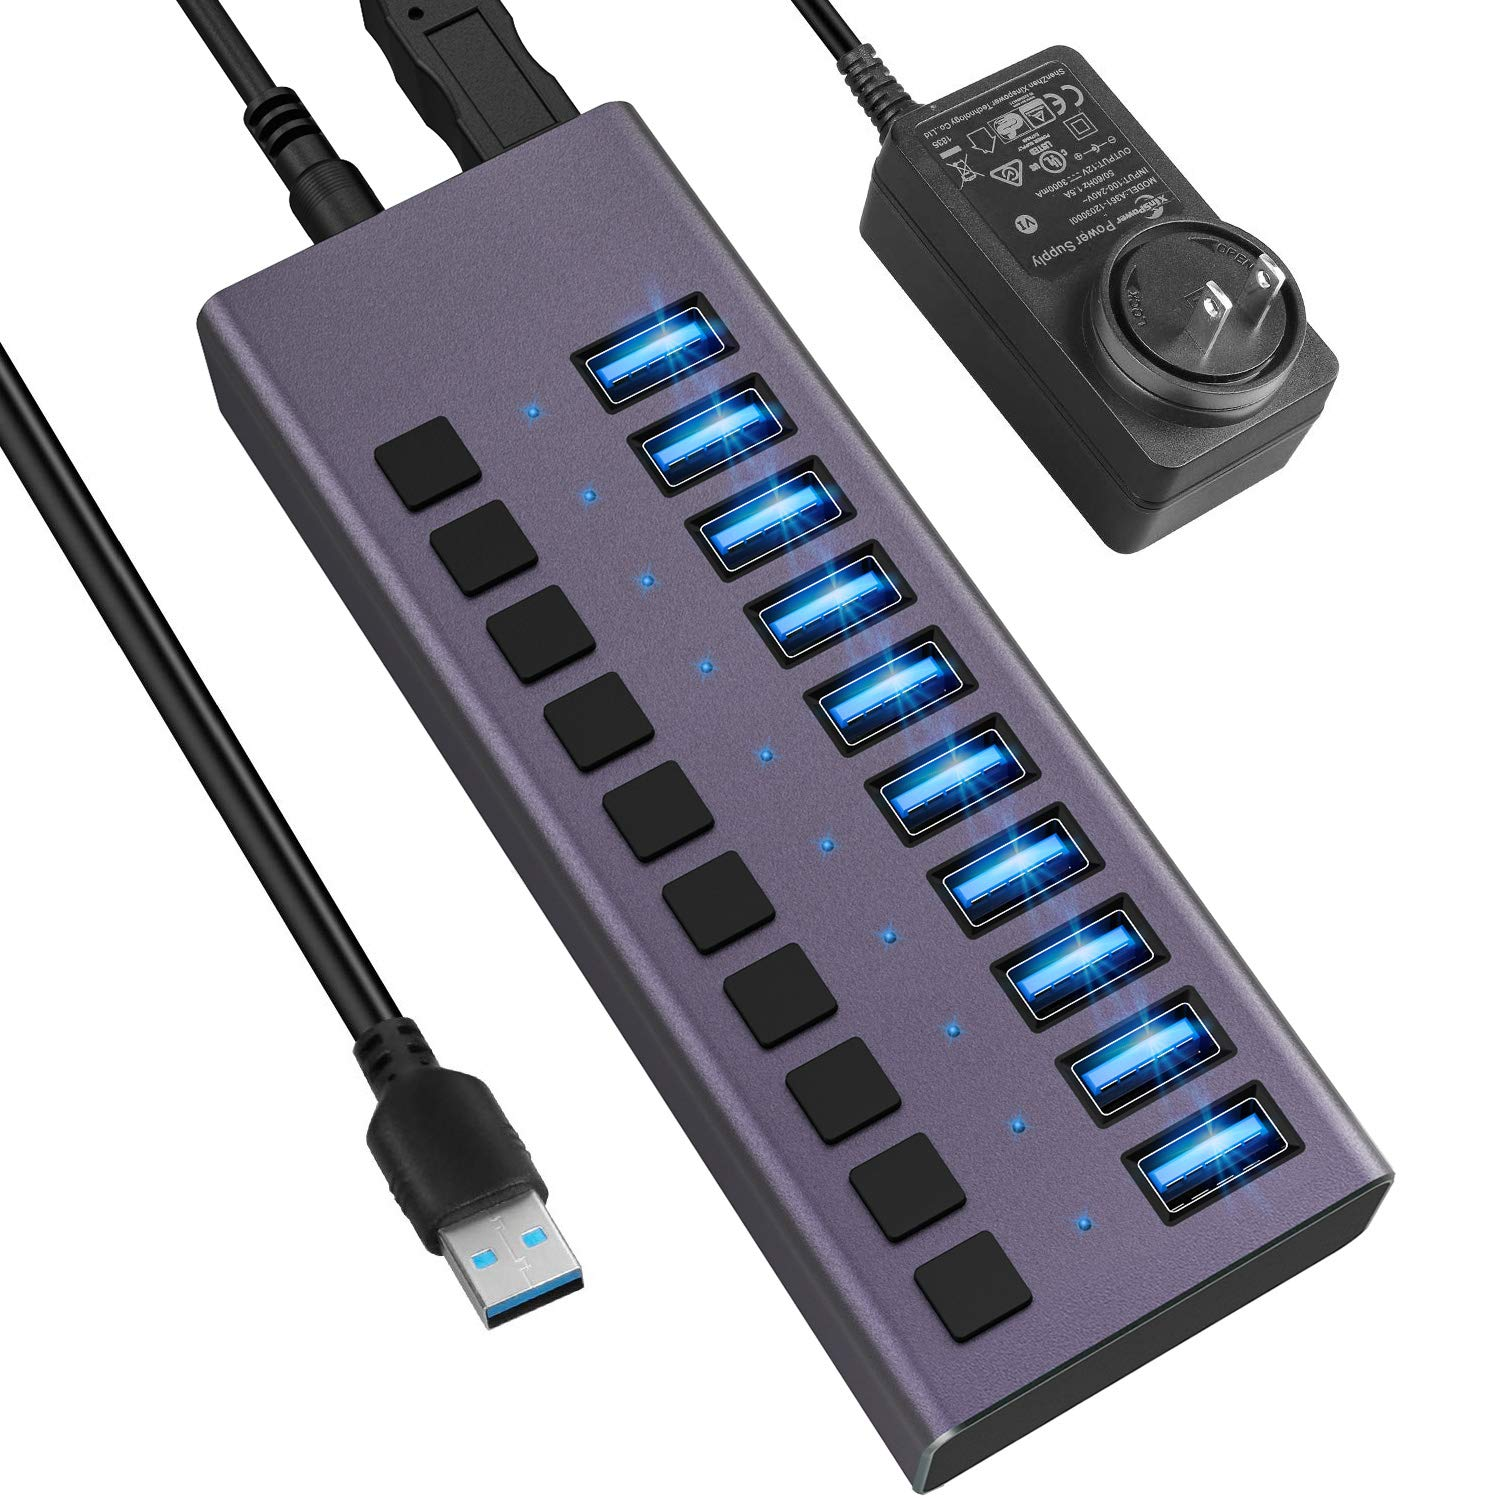 USB 3.0 Hub-10 Ports Powered USB Hub 60W USB Charging Hub with Individual On/Off Switches and 12V/4A Power Adapter and Light for PC, Laptop, Computer, Mobile HDD, Flash Drive and More(Purple)